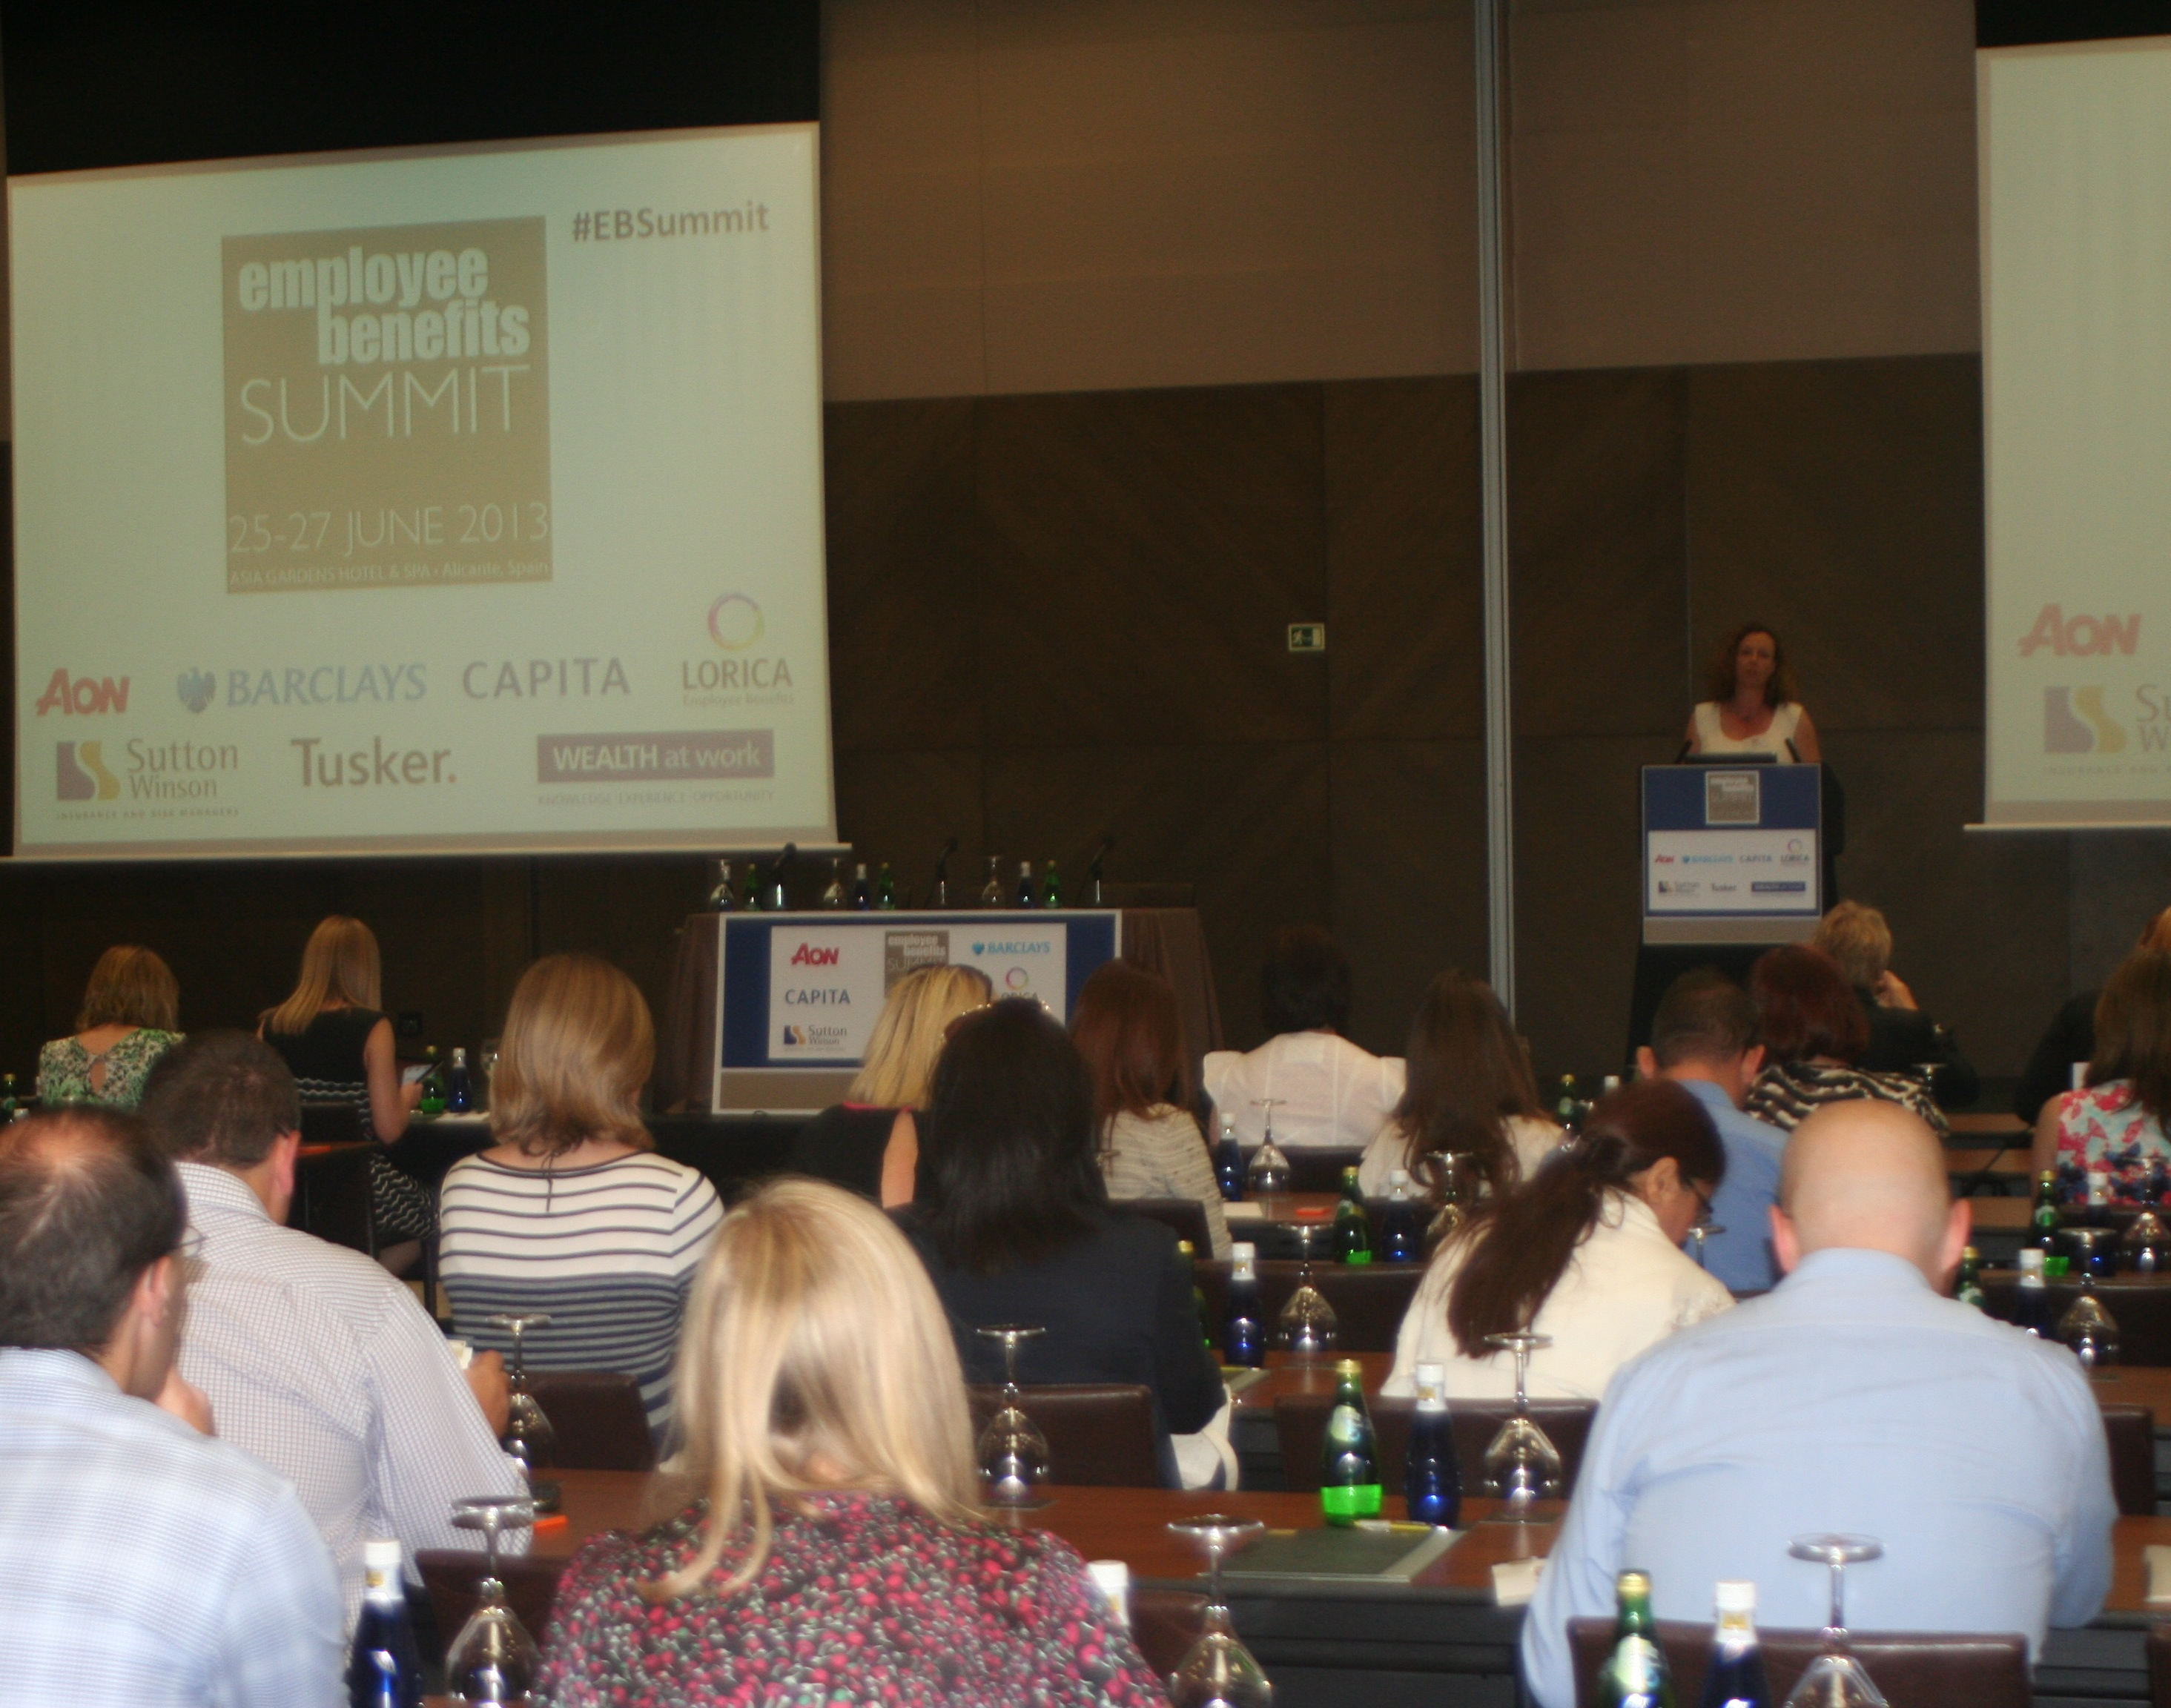 Employee-Benefits-Summit-2013-conference